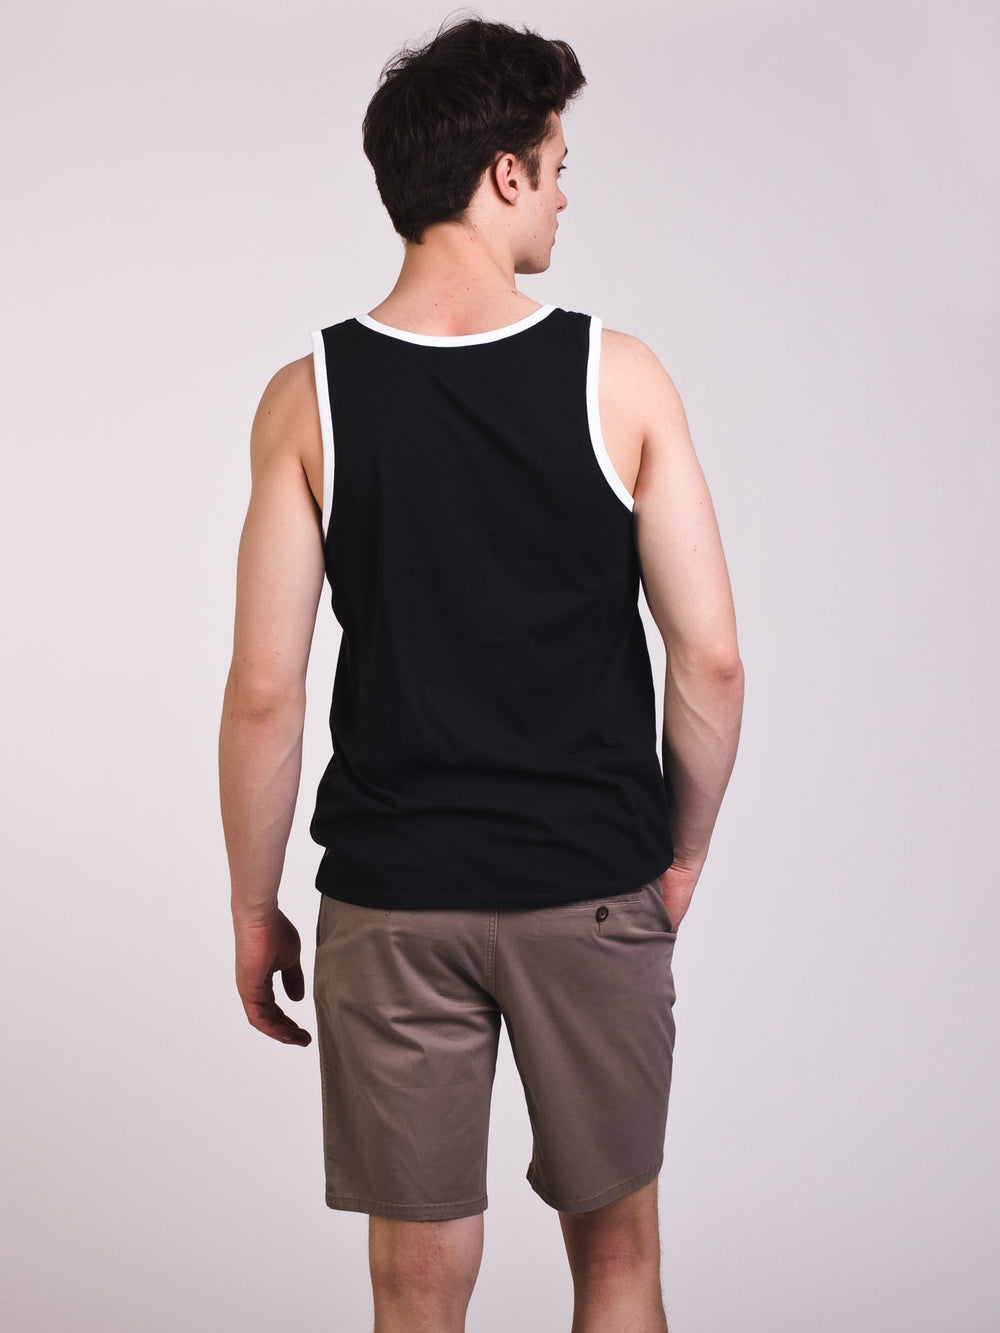 MENS SB TANK RINGER - BLACK/WHITE- CLEARANCE